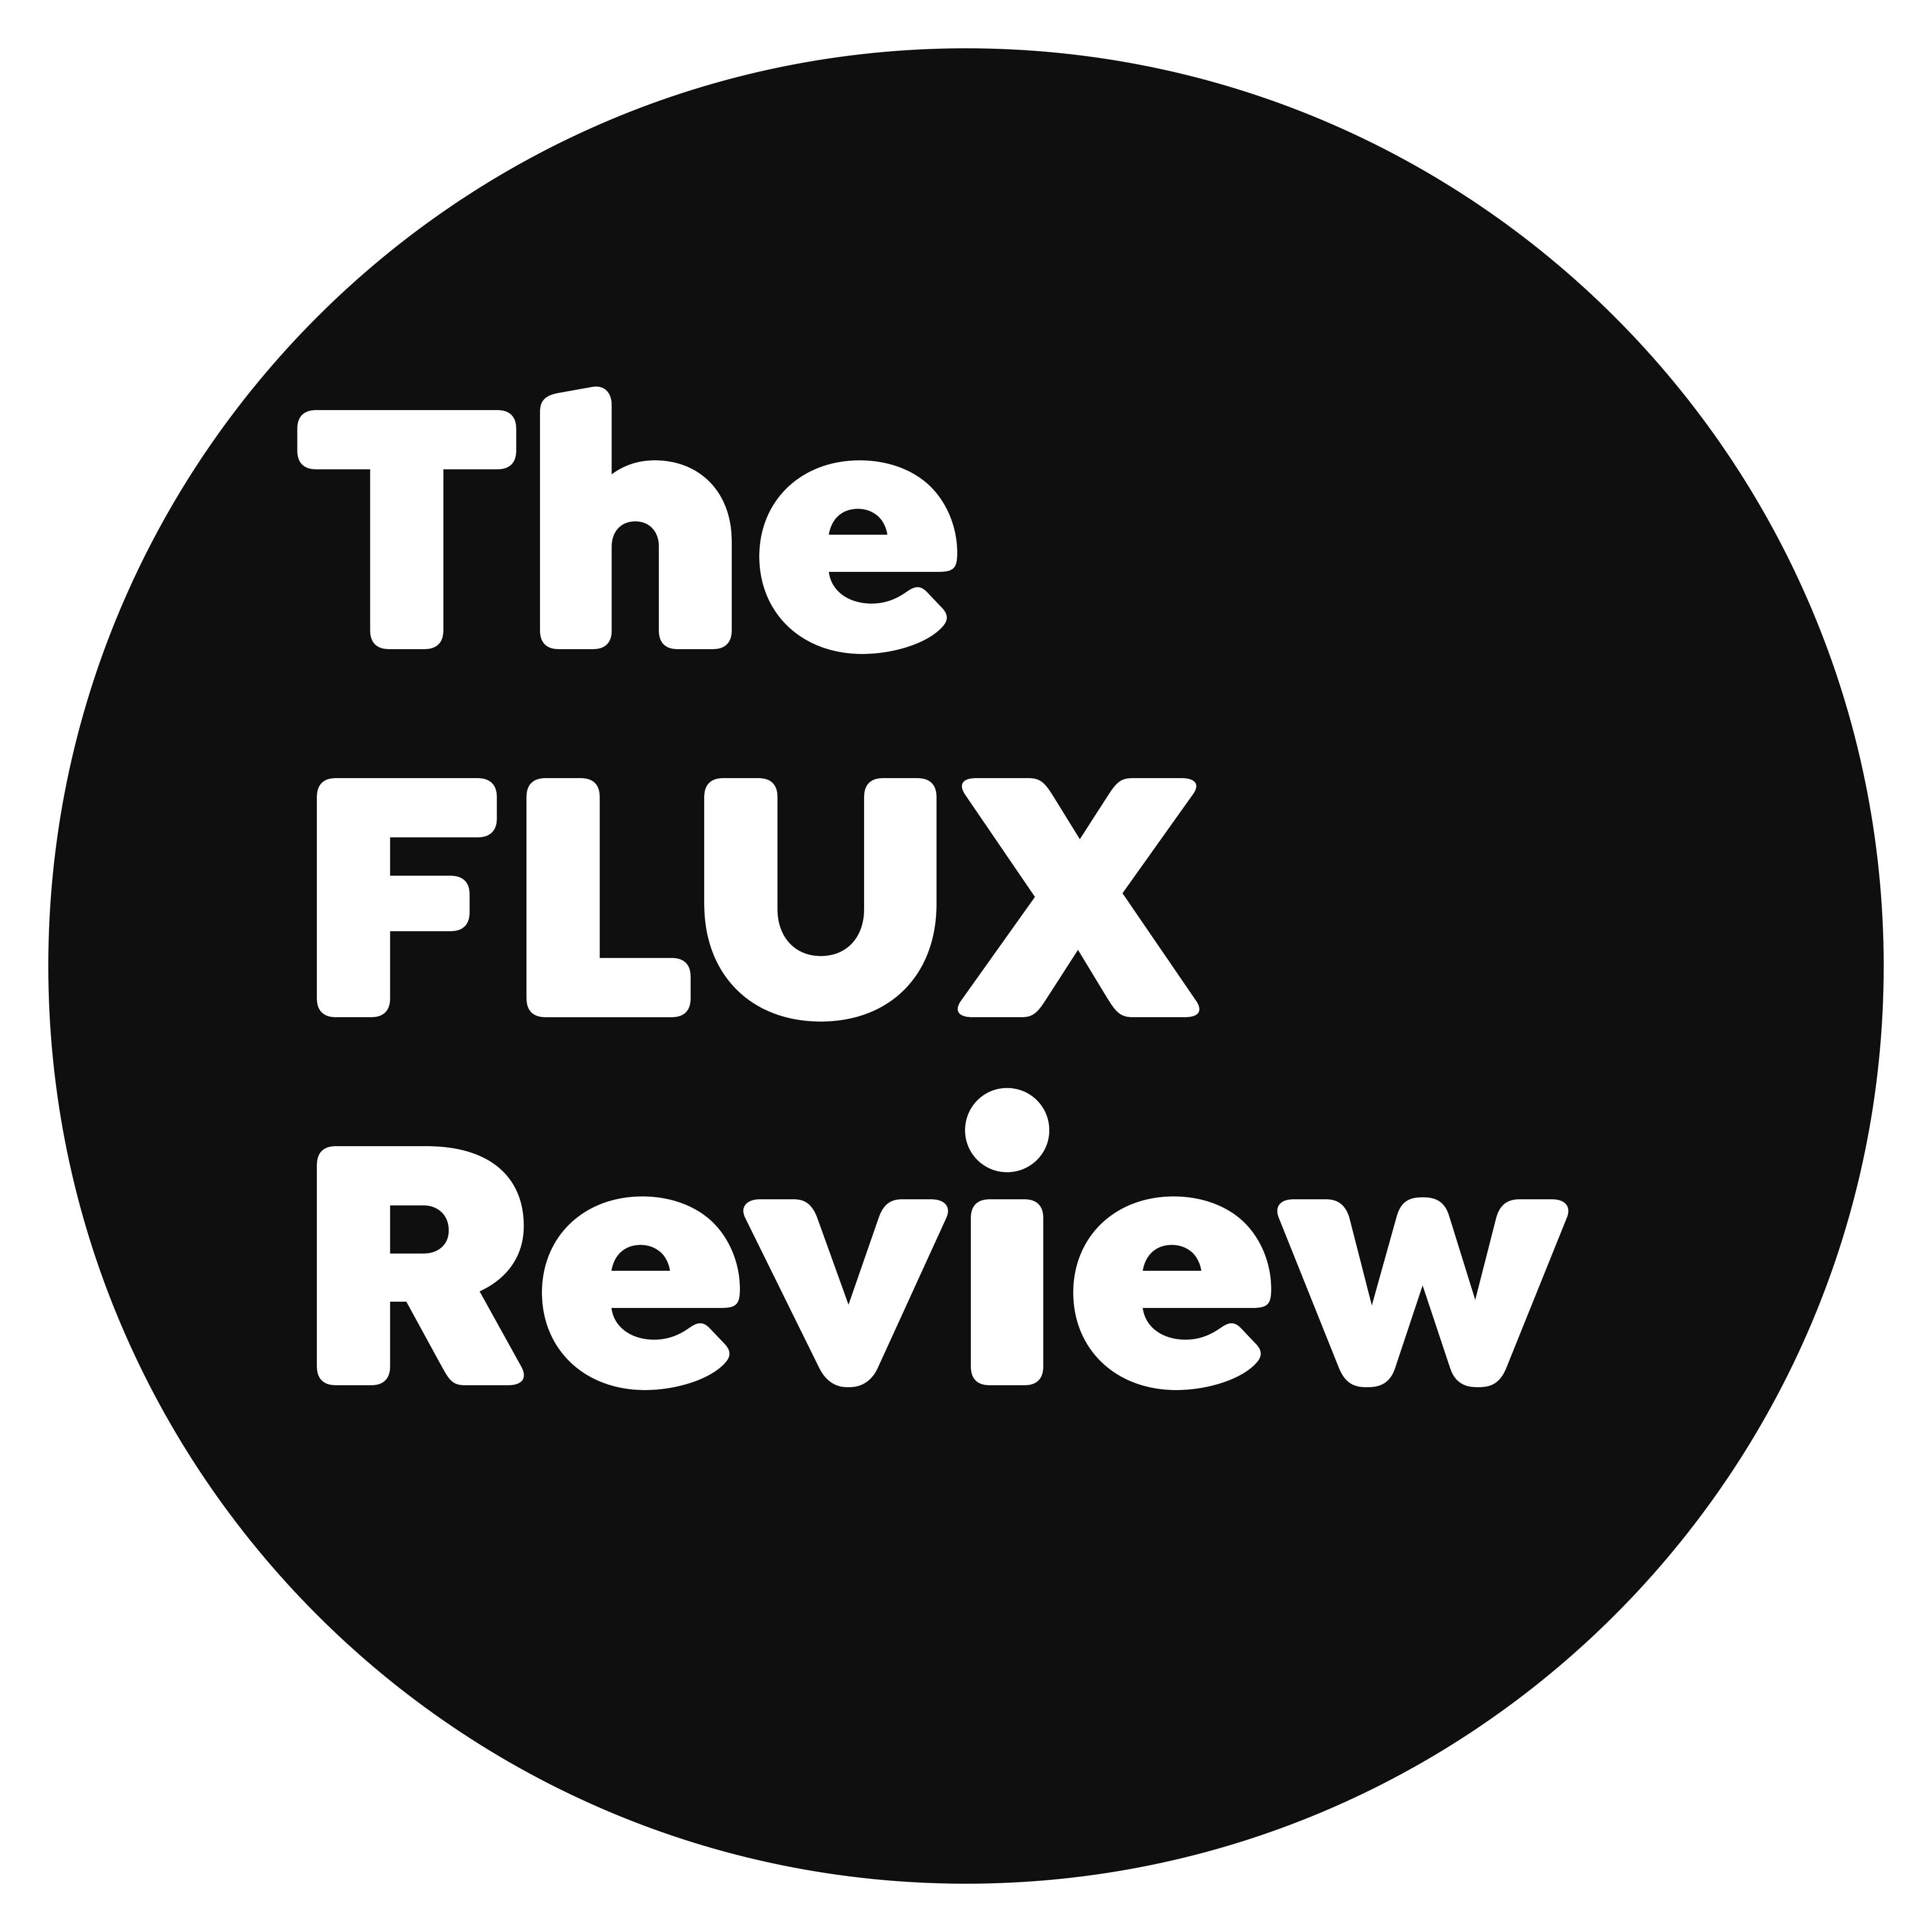 the flux review